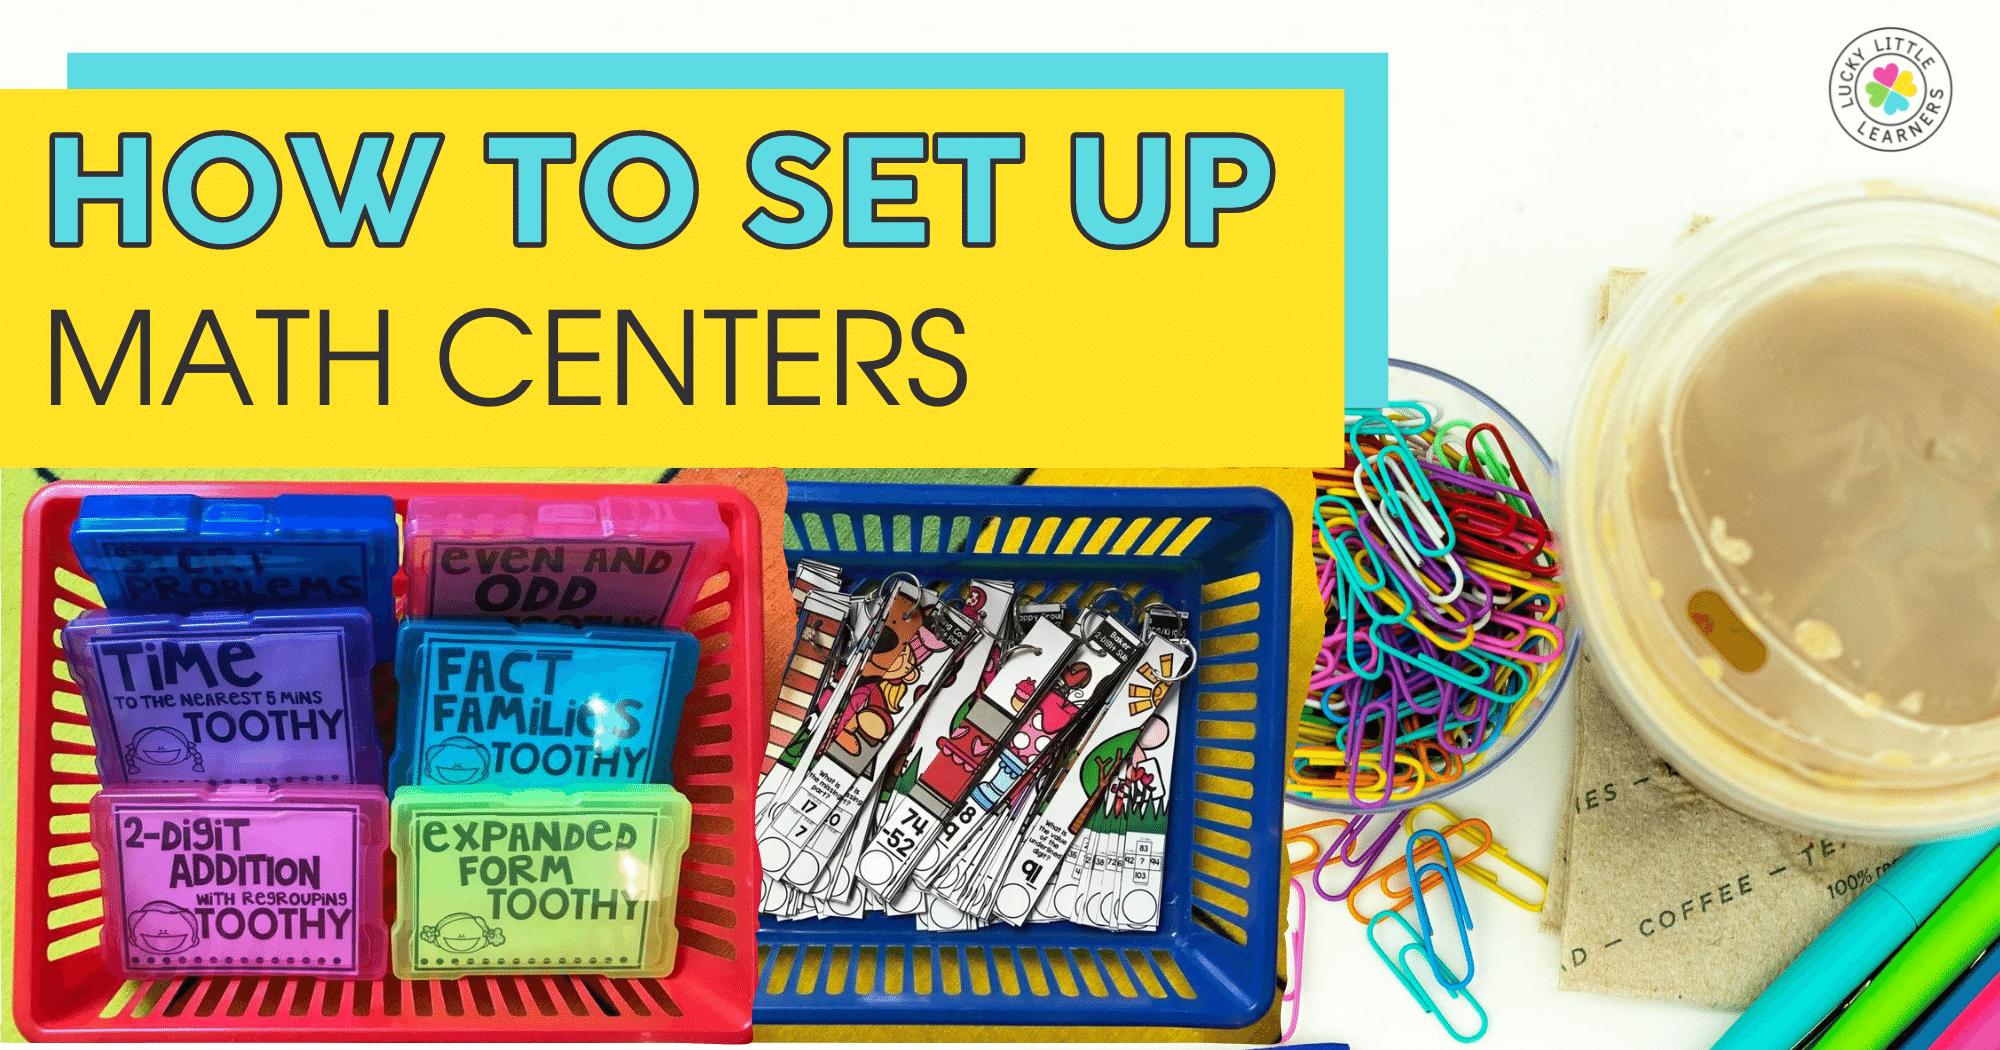 How to Set Up Math Centers